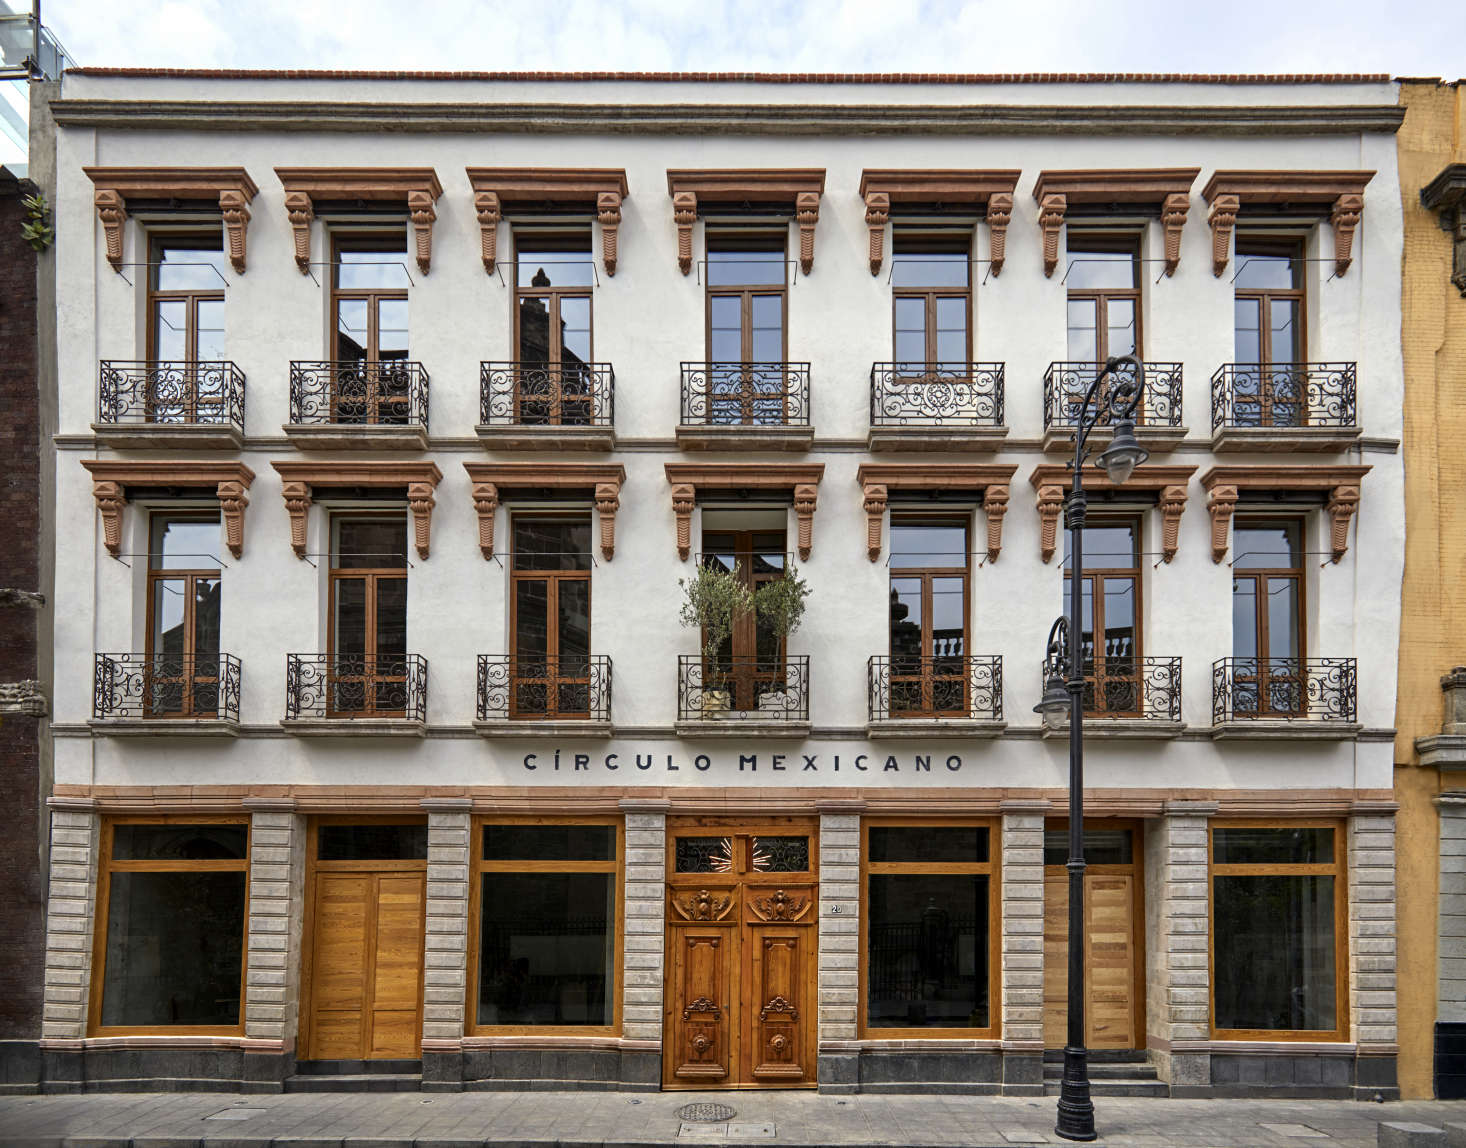 Now home to a modern marketplace beneath the hotel's  rooms, the renovated façade provides a modern update on the building's th-century design.